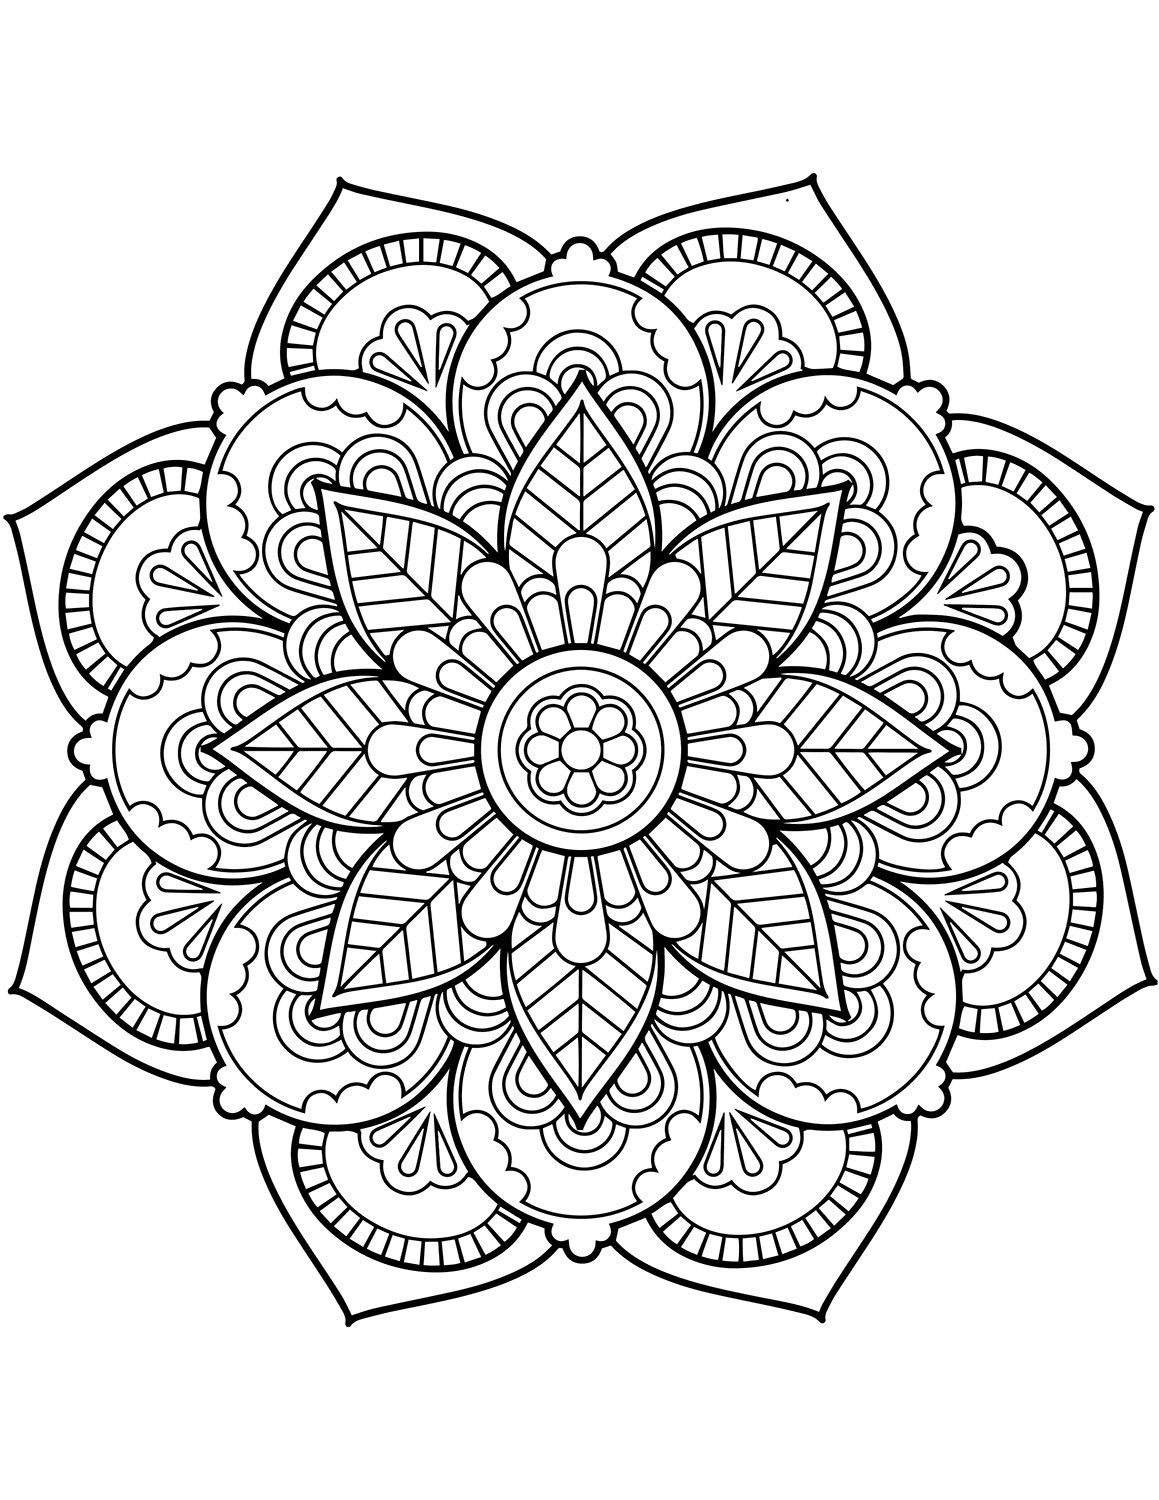 Flower Mandala Coloring Pages Best Coloring Pages For Kids Mandala Coloring Pages Flower Coloring Pages Mandala Coloring Books